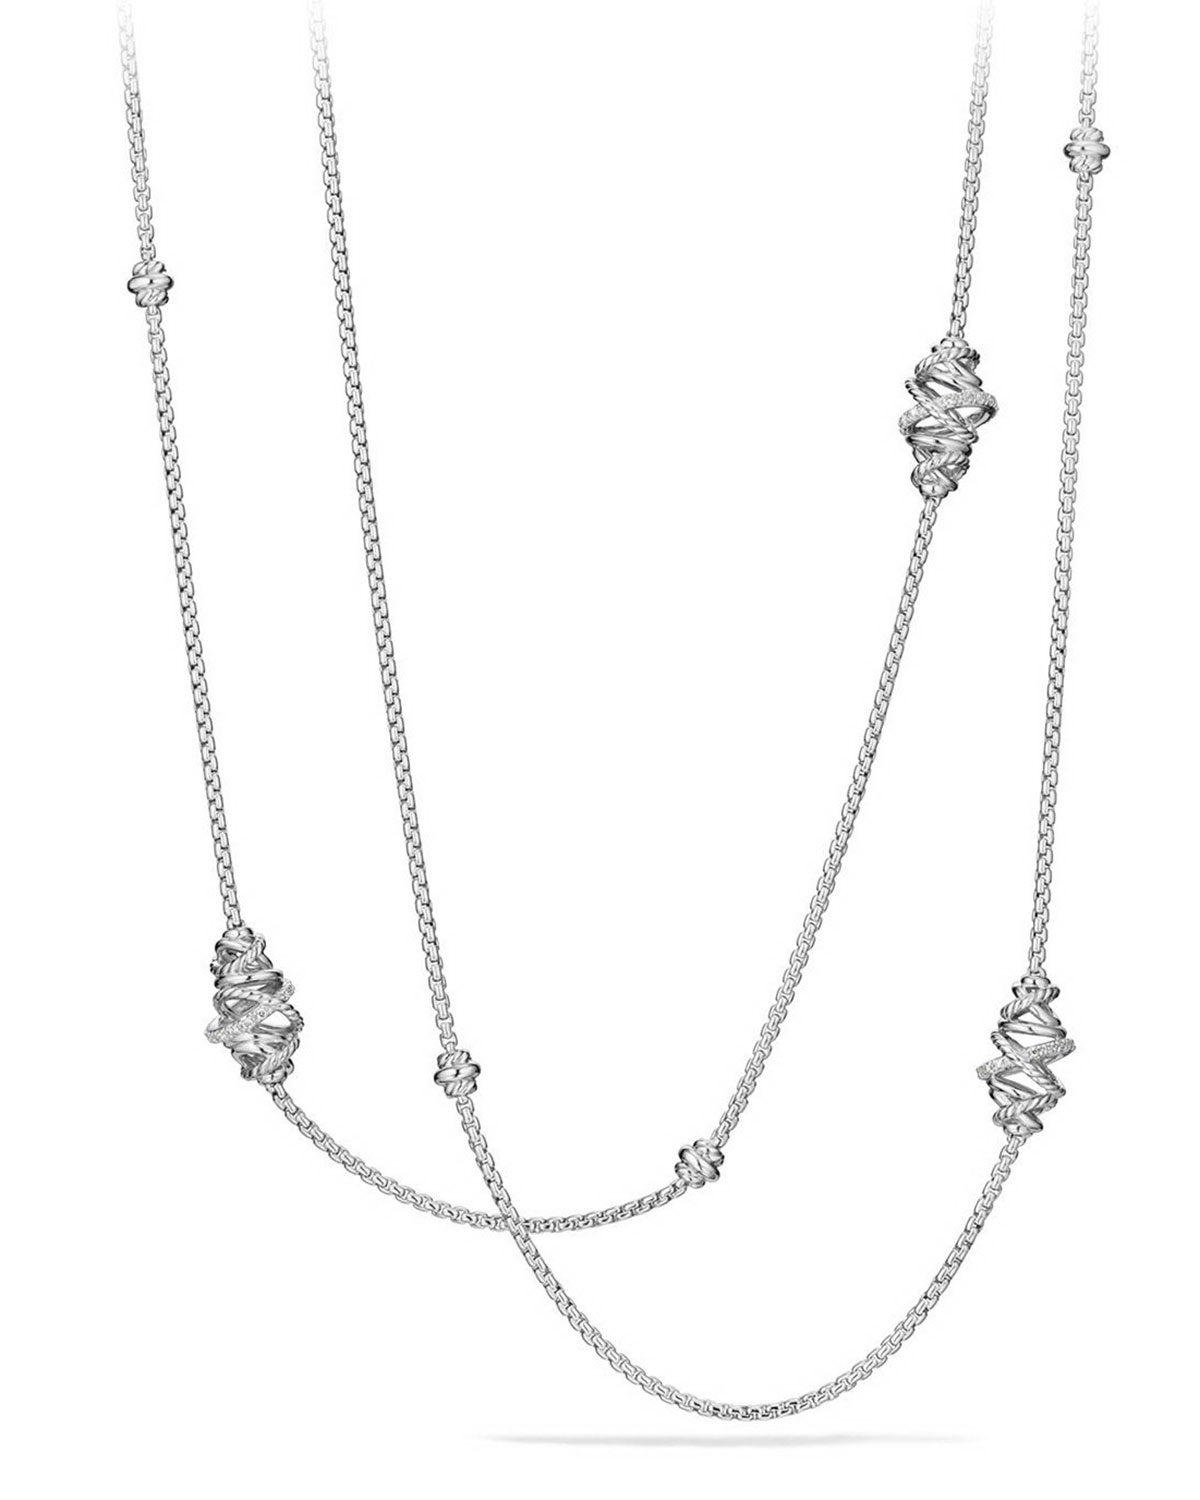 Crossover Sterling Silver Station Necklace with Diamonds